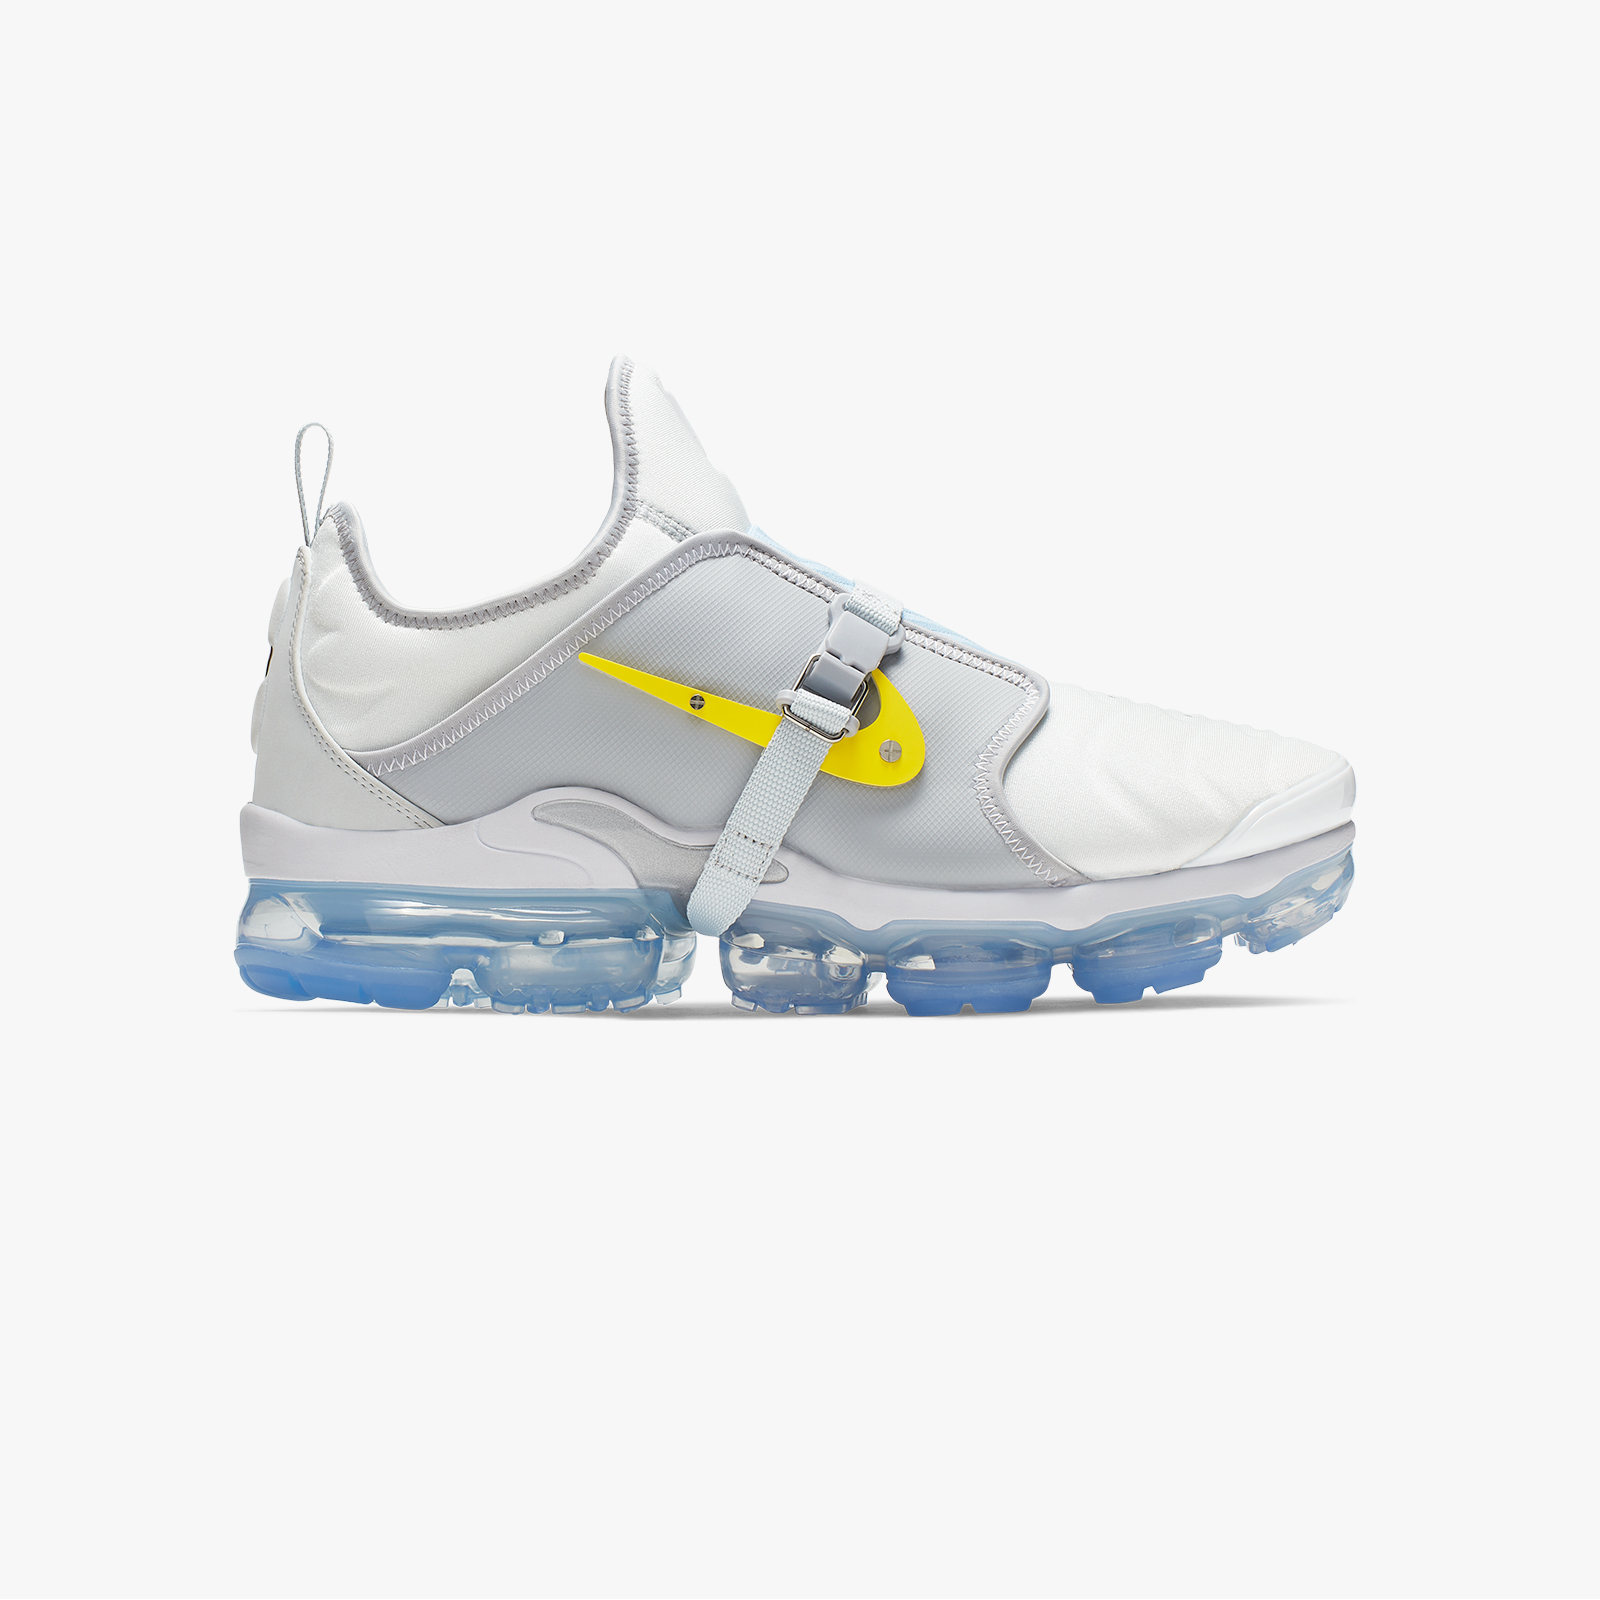 Vapormax Plus Air Air Nike On Ybf6y7g